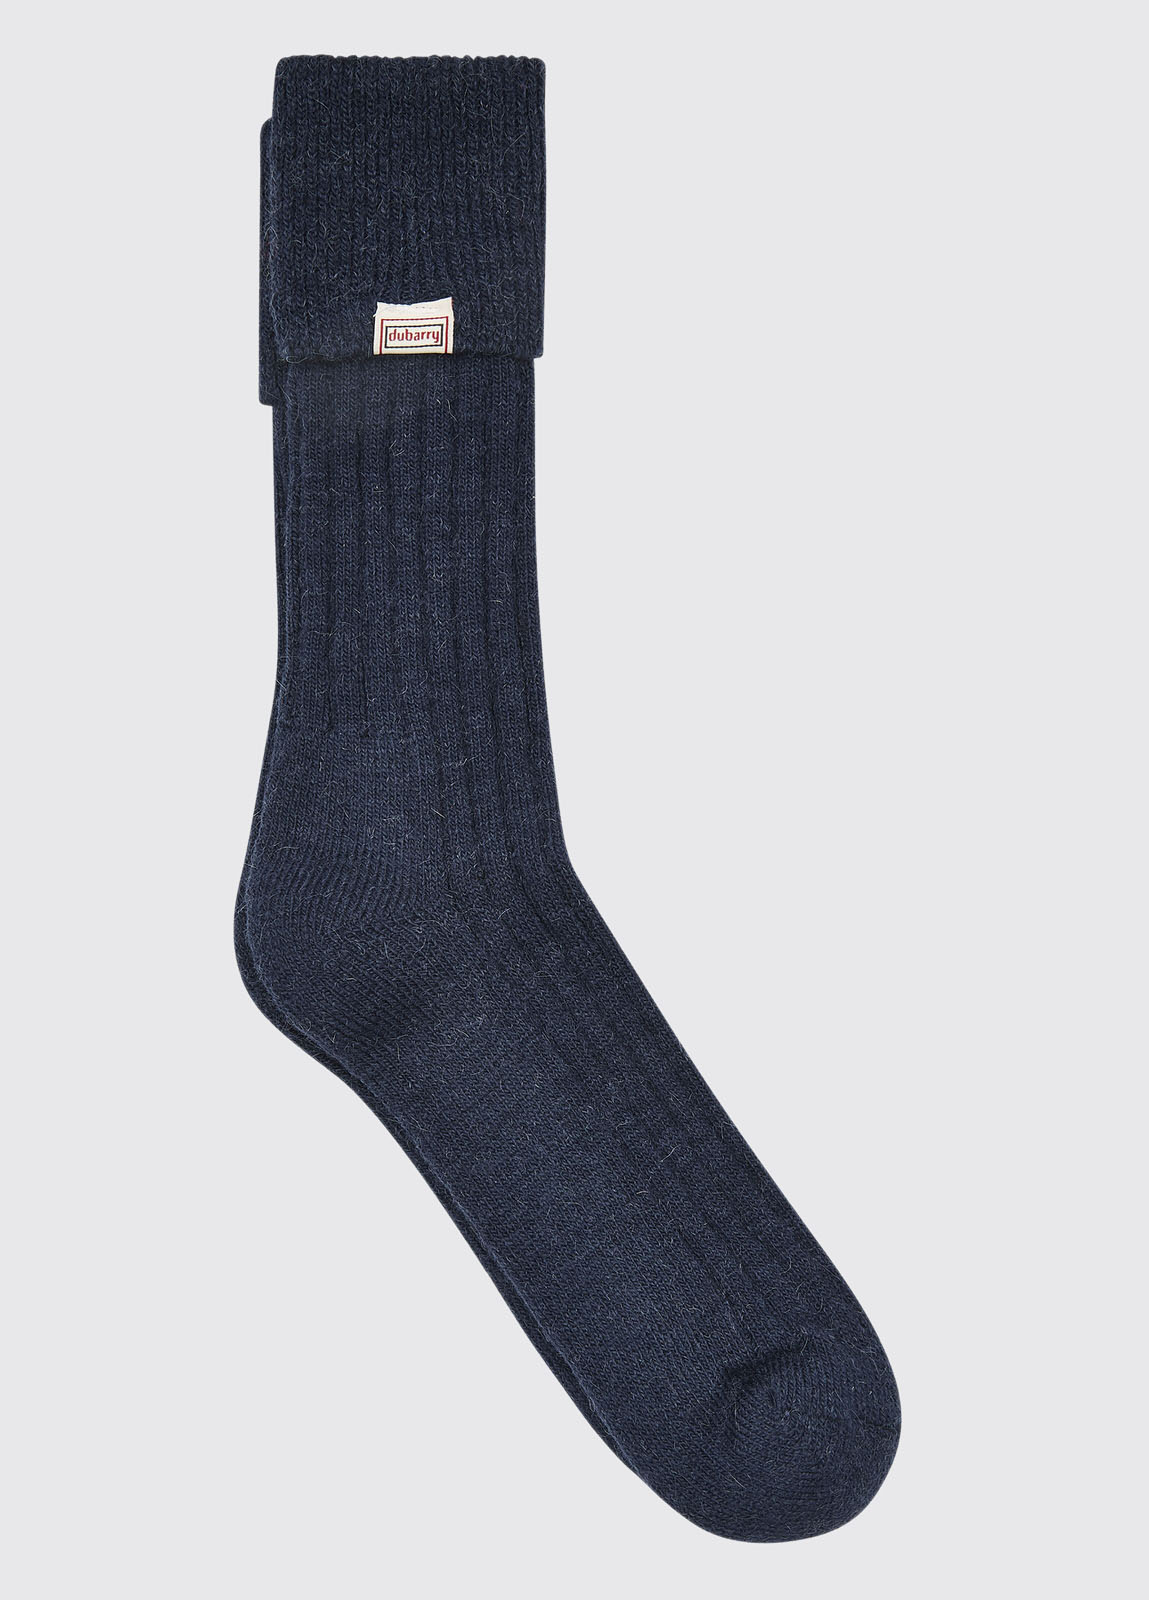 Holycross Alpaca Socks - Navy